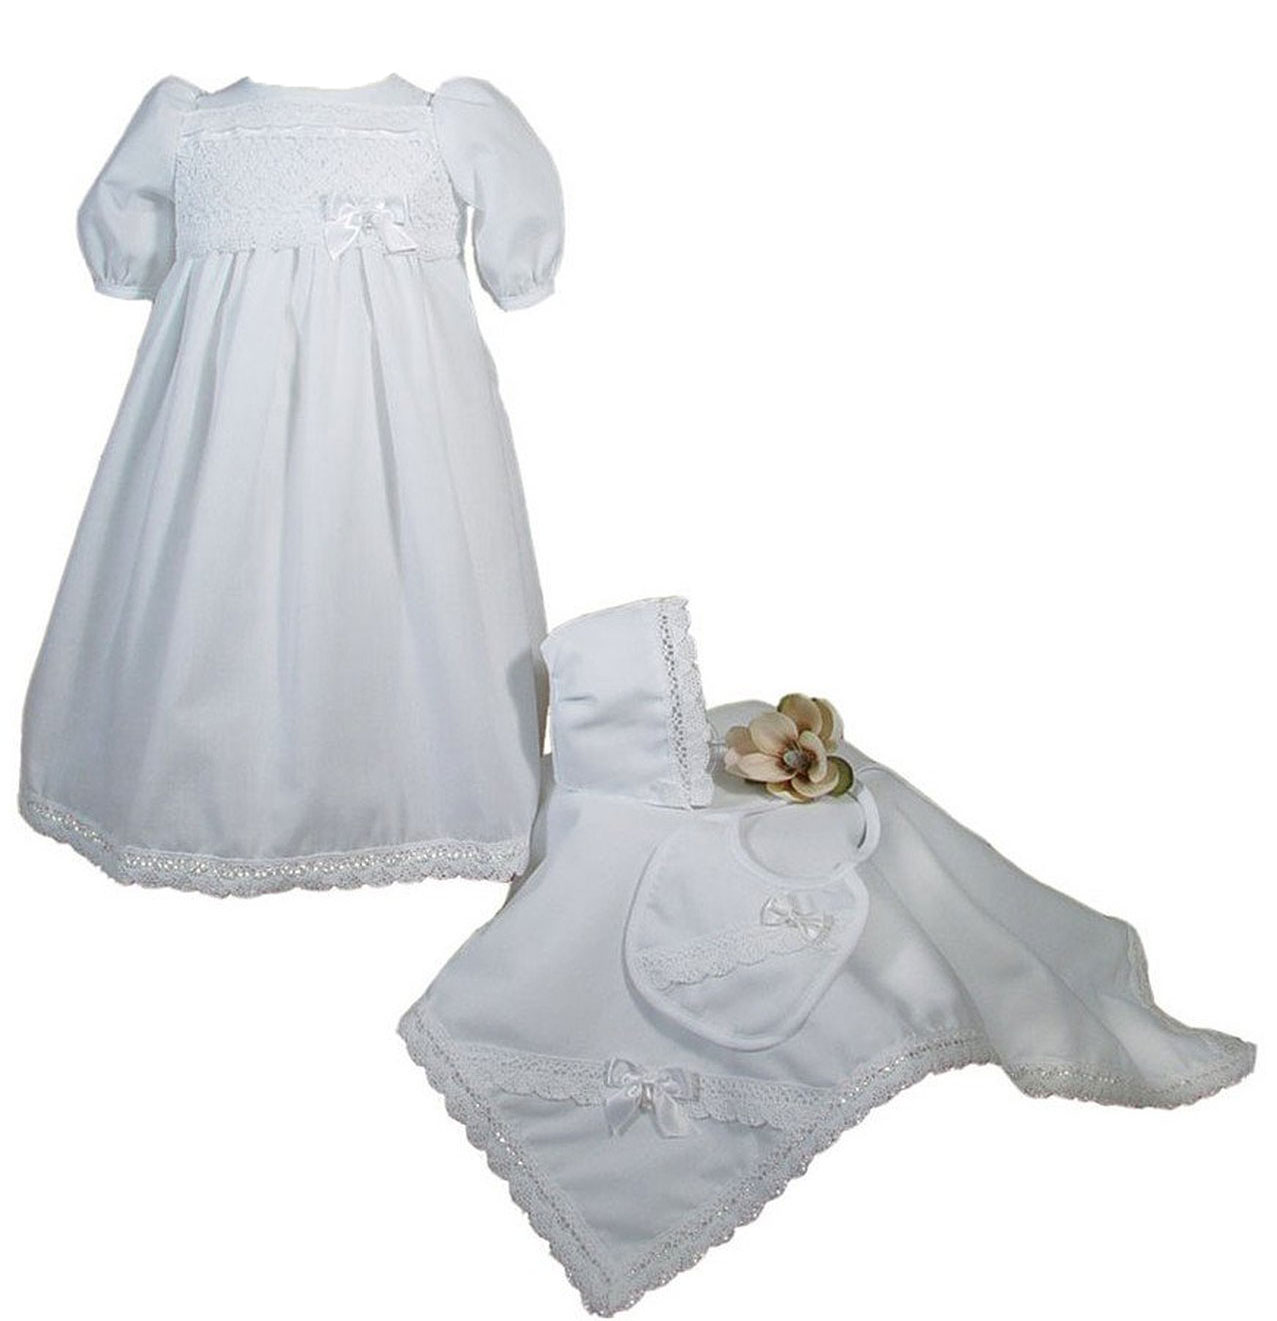 Girls Preemie Dress Christening Gown Baptism Set with Lace Hem ...